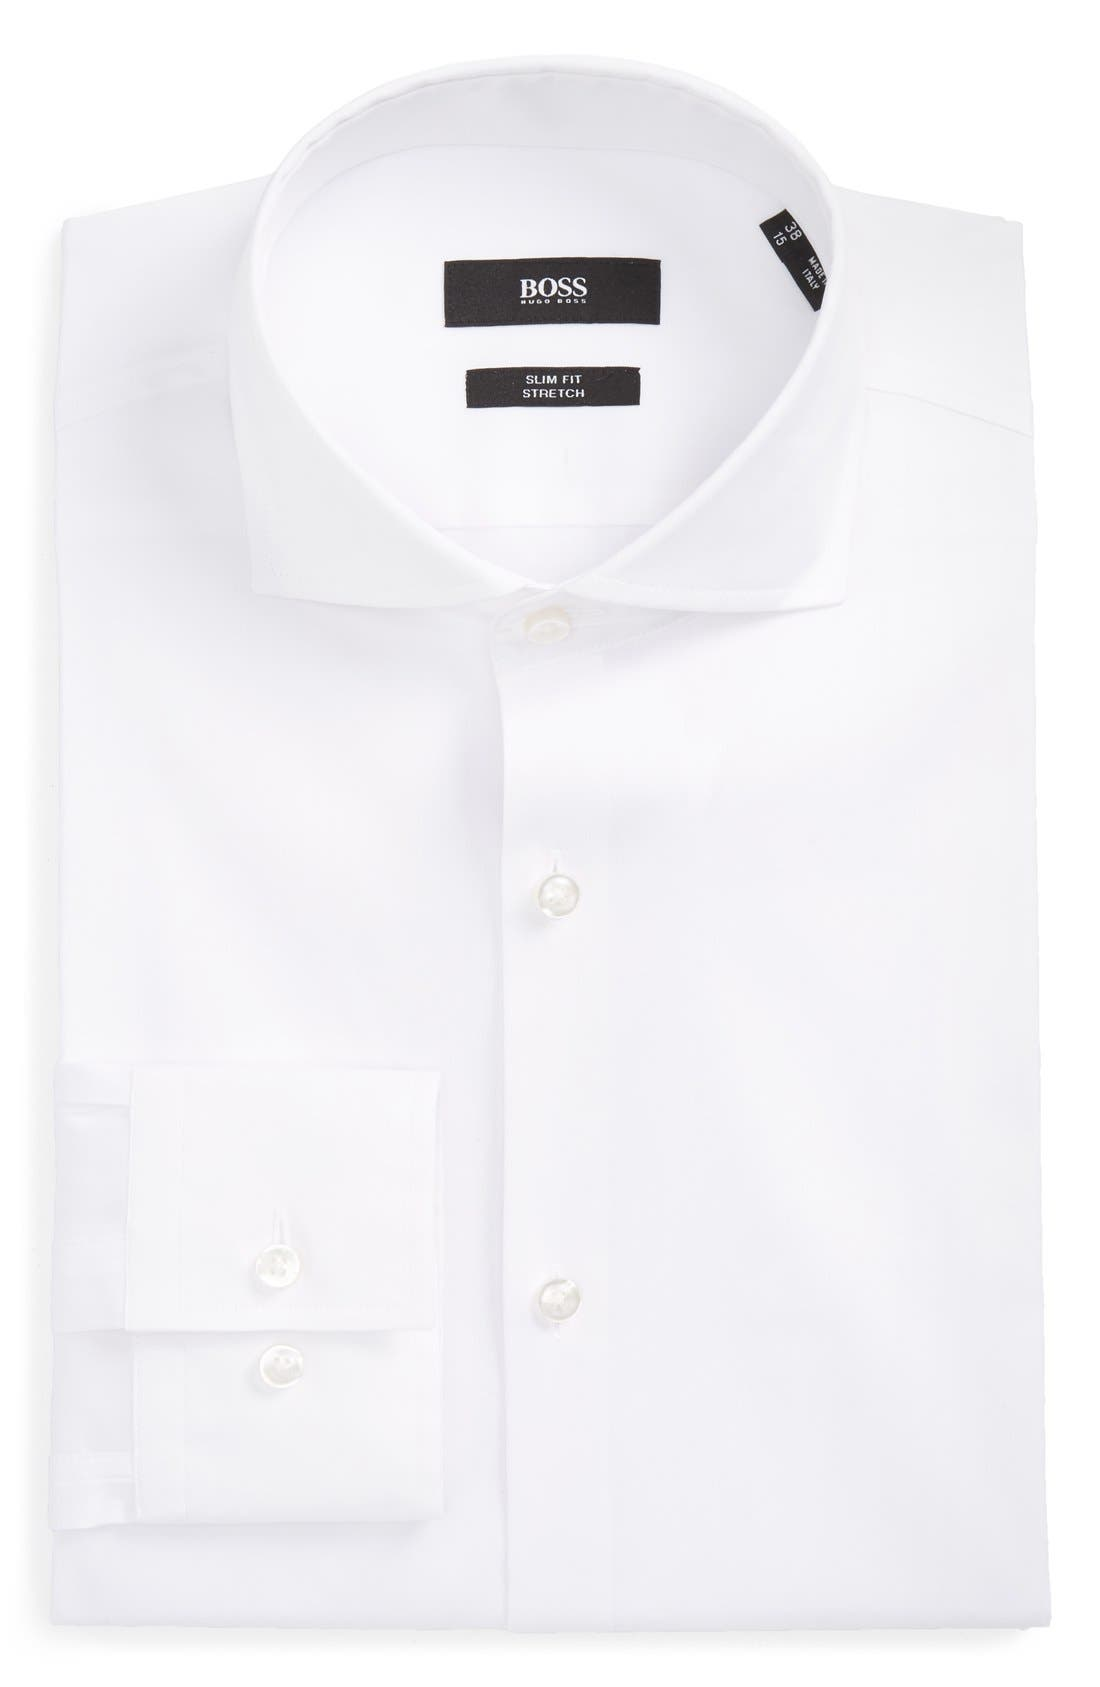 'Jason' Slim Fit Solid Stretch Dress Shirt,                             Main thumbnail 1, color,                             White